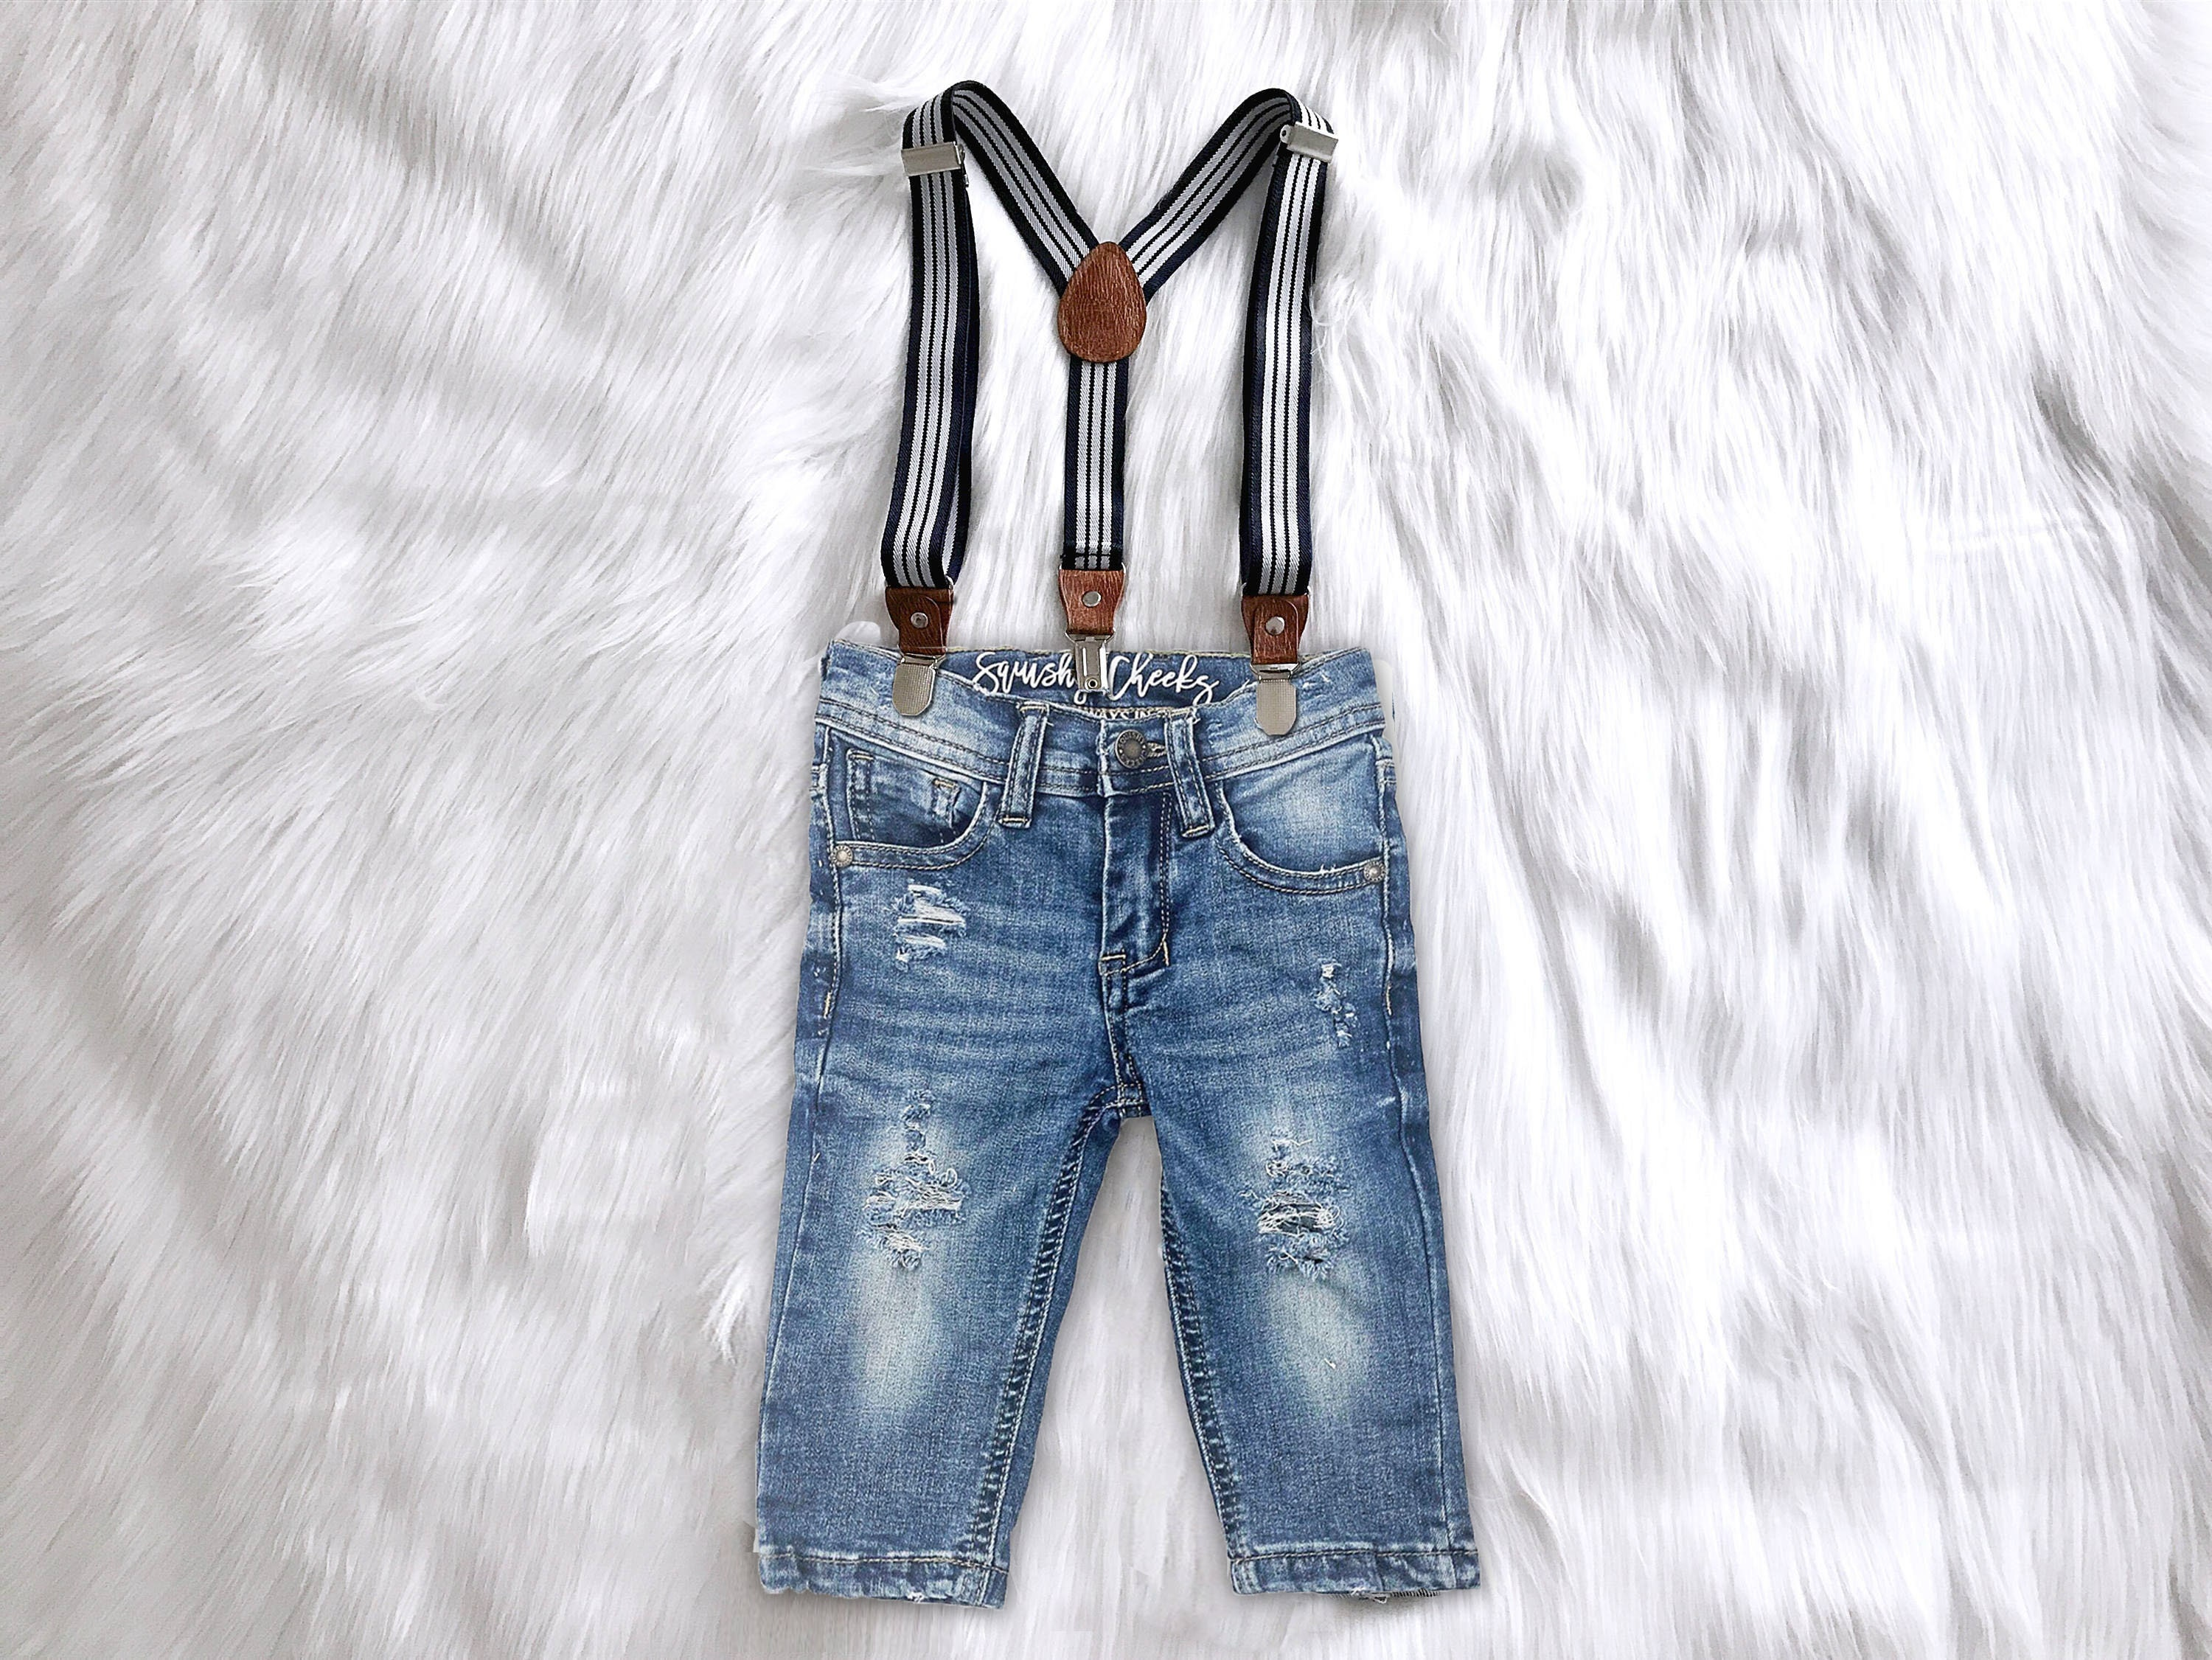 Vintage Overalls & Jumpsuits Boys Distressed Denim Suspender Pants Or Shorts First Birthday Outfit Boy Smash Cake Newborn Photo Overalls $53.00 AT vintagedancer.com